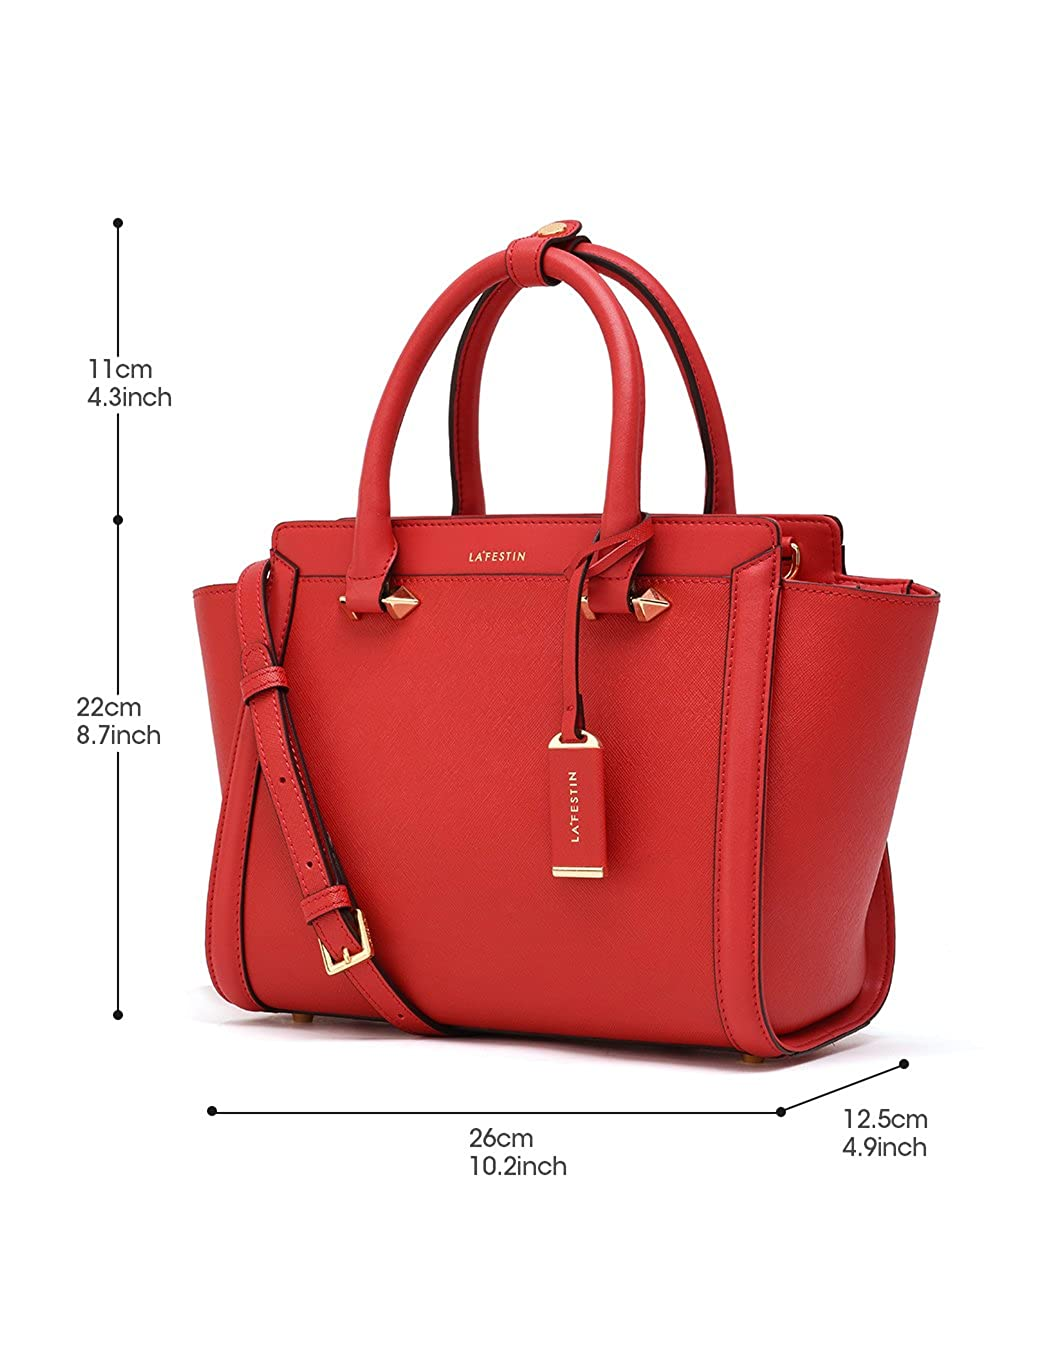 af7d5757e3ab LA FESTIN Bags for Women 2017 Fashion Big Purses Genuine Leather Top Handle  Handbags (Red)  Handbags  Amazon.com